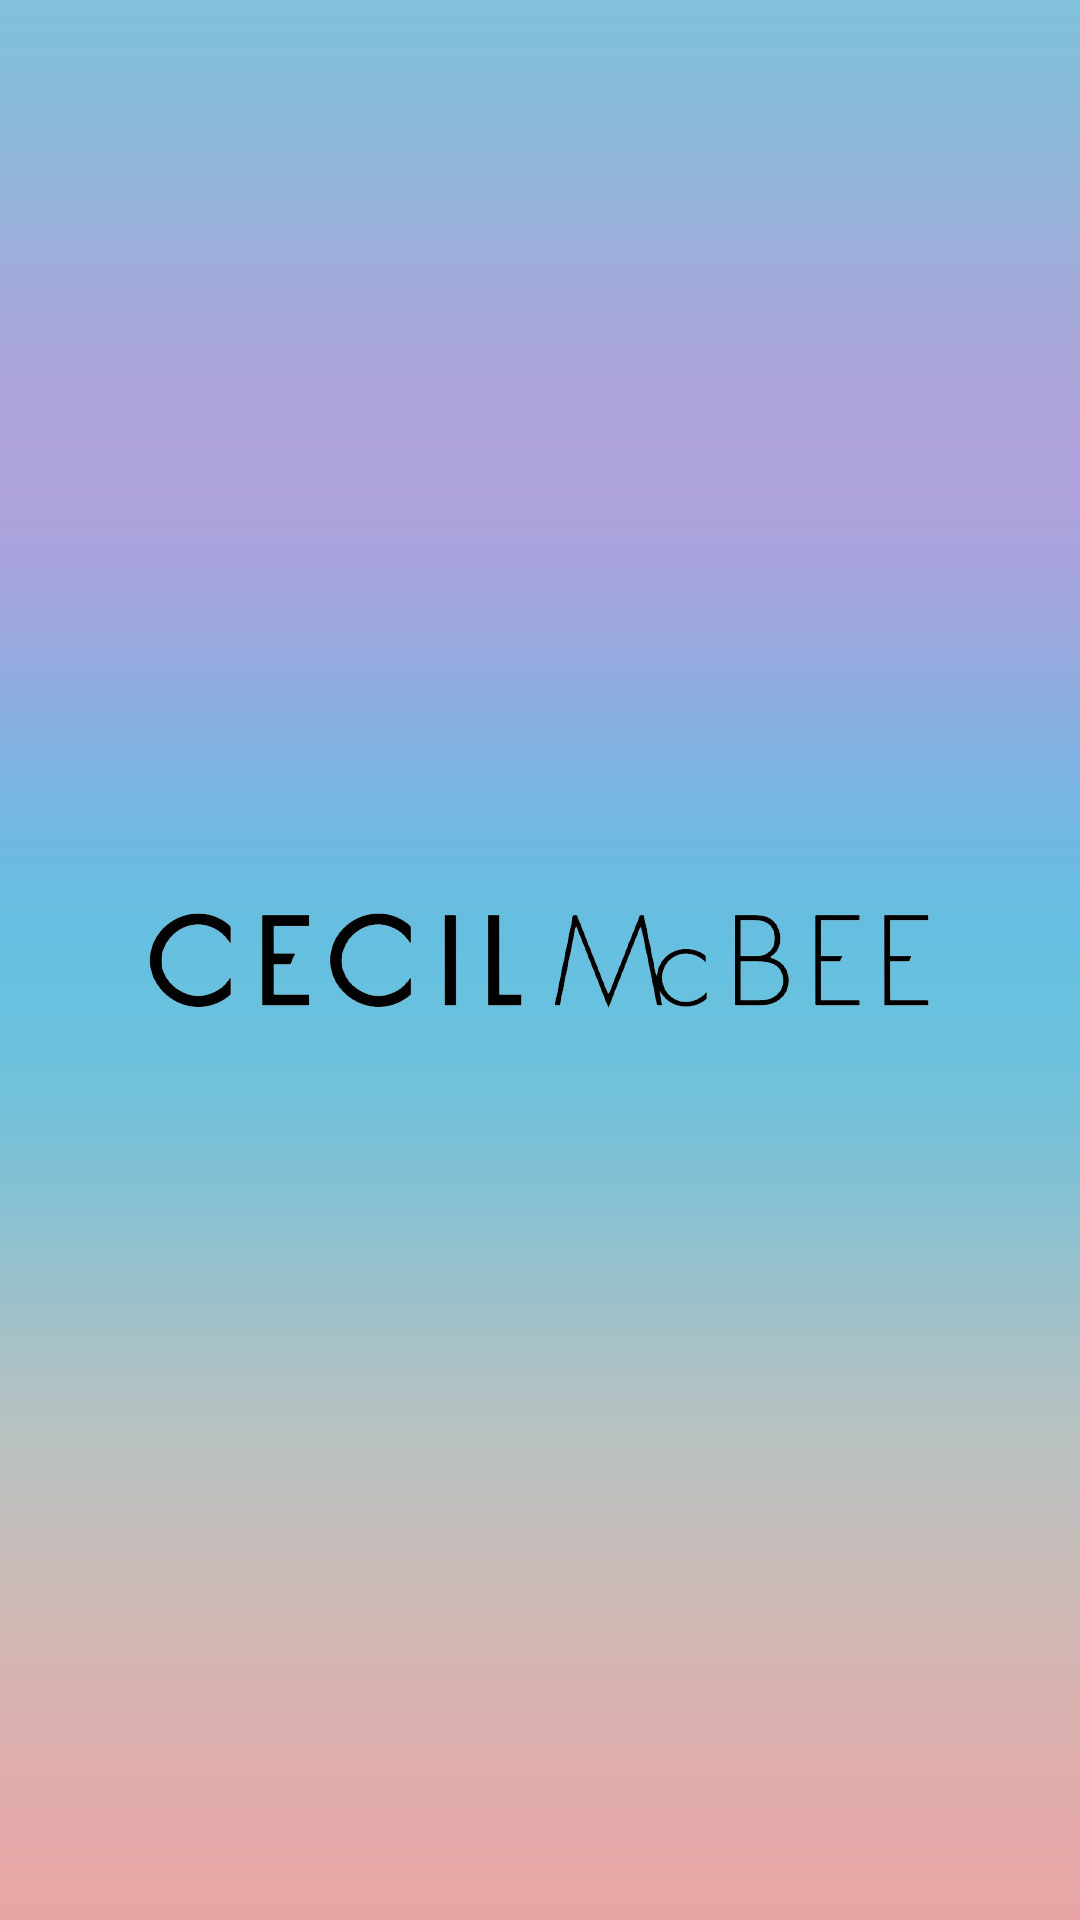 cecil00018 - セシルマクビー[CECIL McBEE]の高画質スマホ壁紙23枚 [iPhone&Androidに対応]